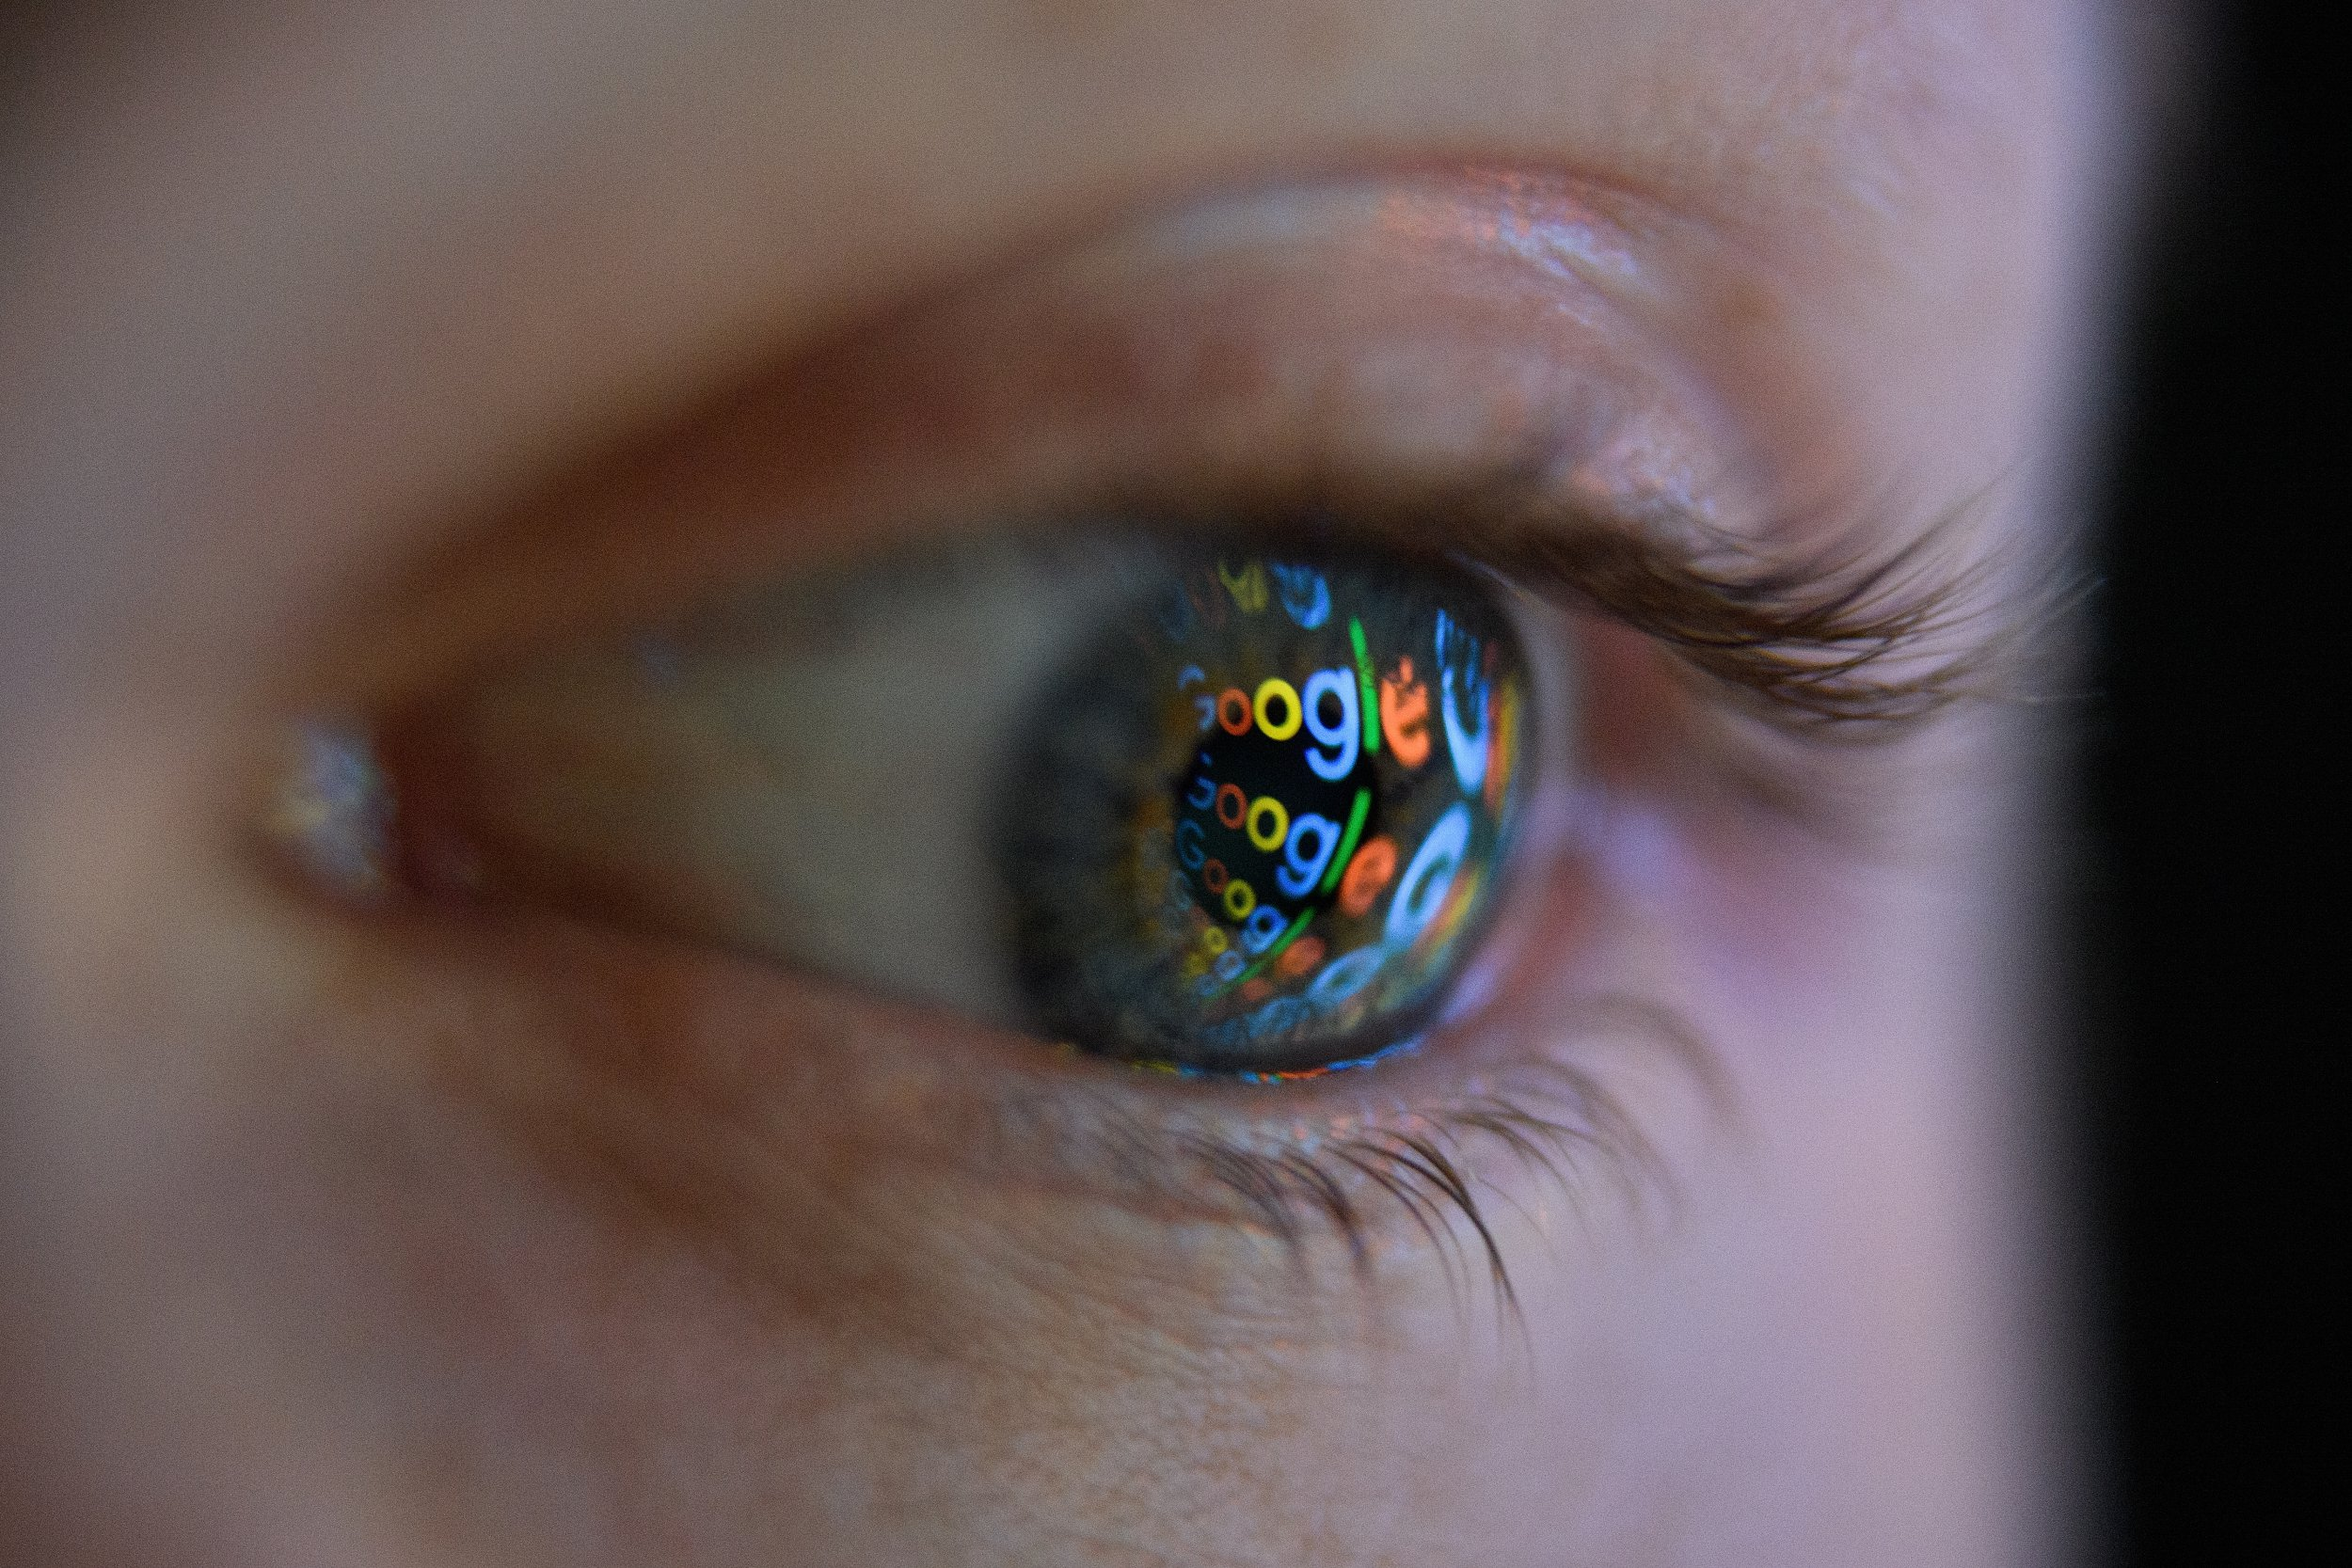 LONDON, ENGLAND - AUGUST 09: In this photo illustration, an image of the Google logo is reflected on the eye of a young man on August 09, 2017 in London, England. Founded in 1995 by Sergey Brin and Larry Page, Google now makes hundreds of products used by billions of people across the globe, from YouTube and Android to Smartbox and Google Search. (Photo by Leon Neal/Getty Images)